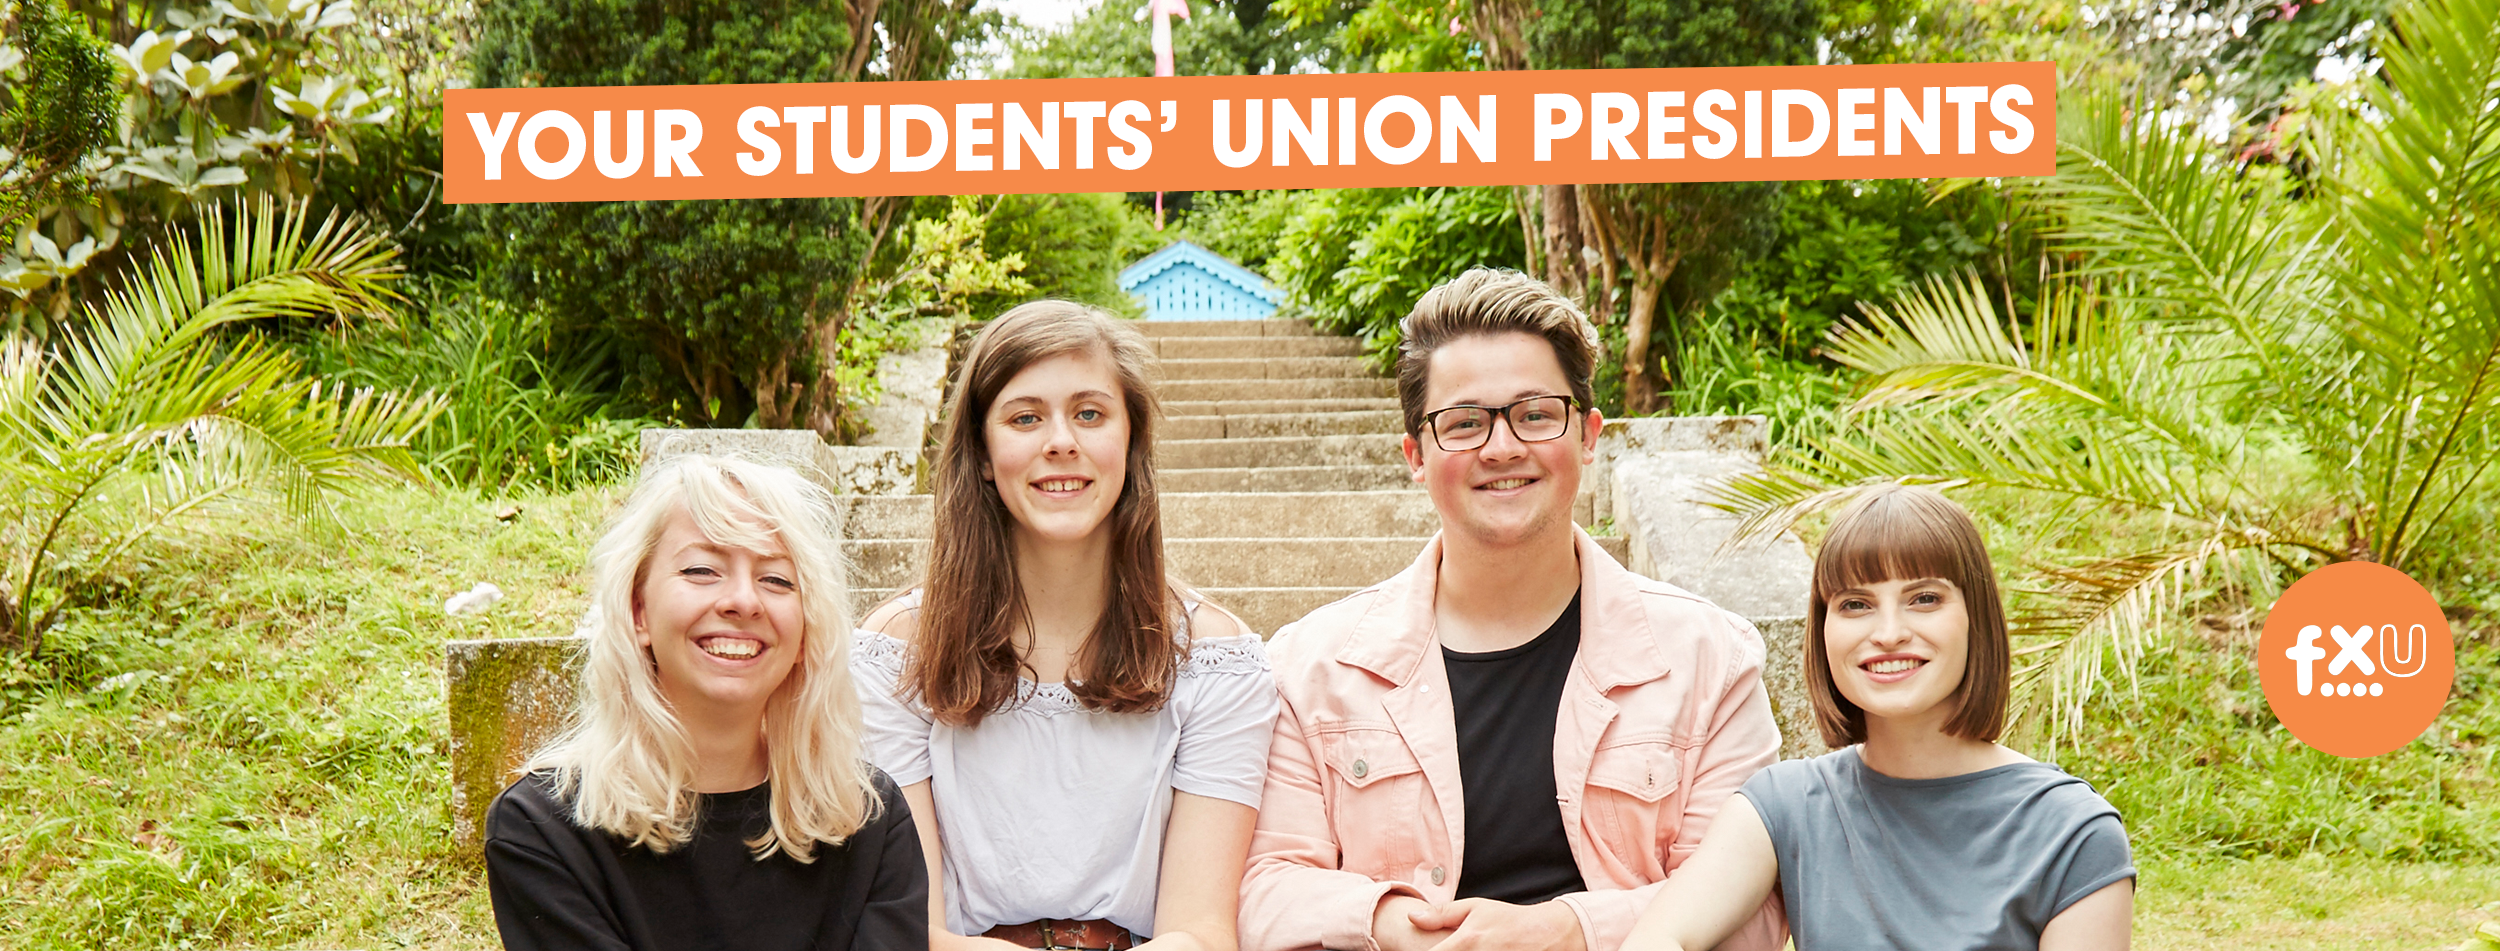 FXU Presidents 2018-19